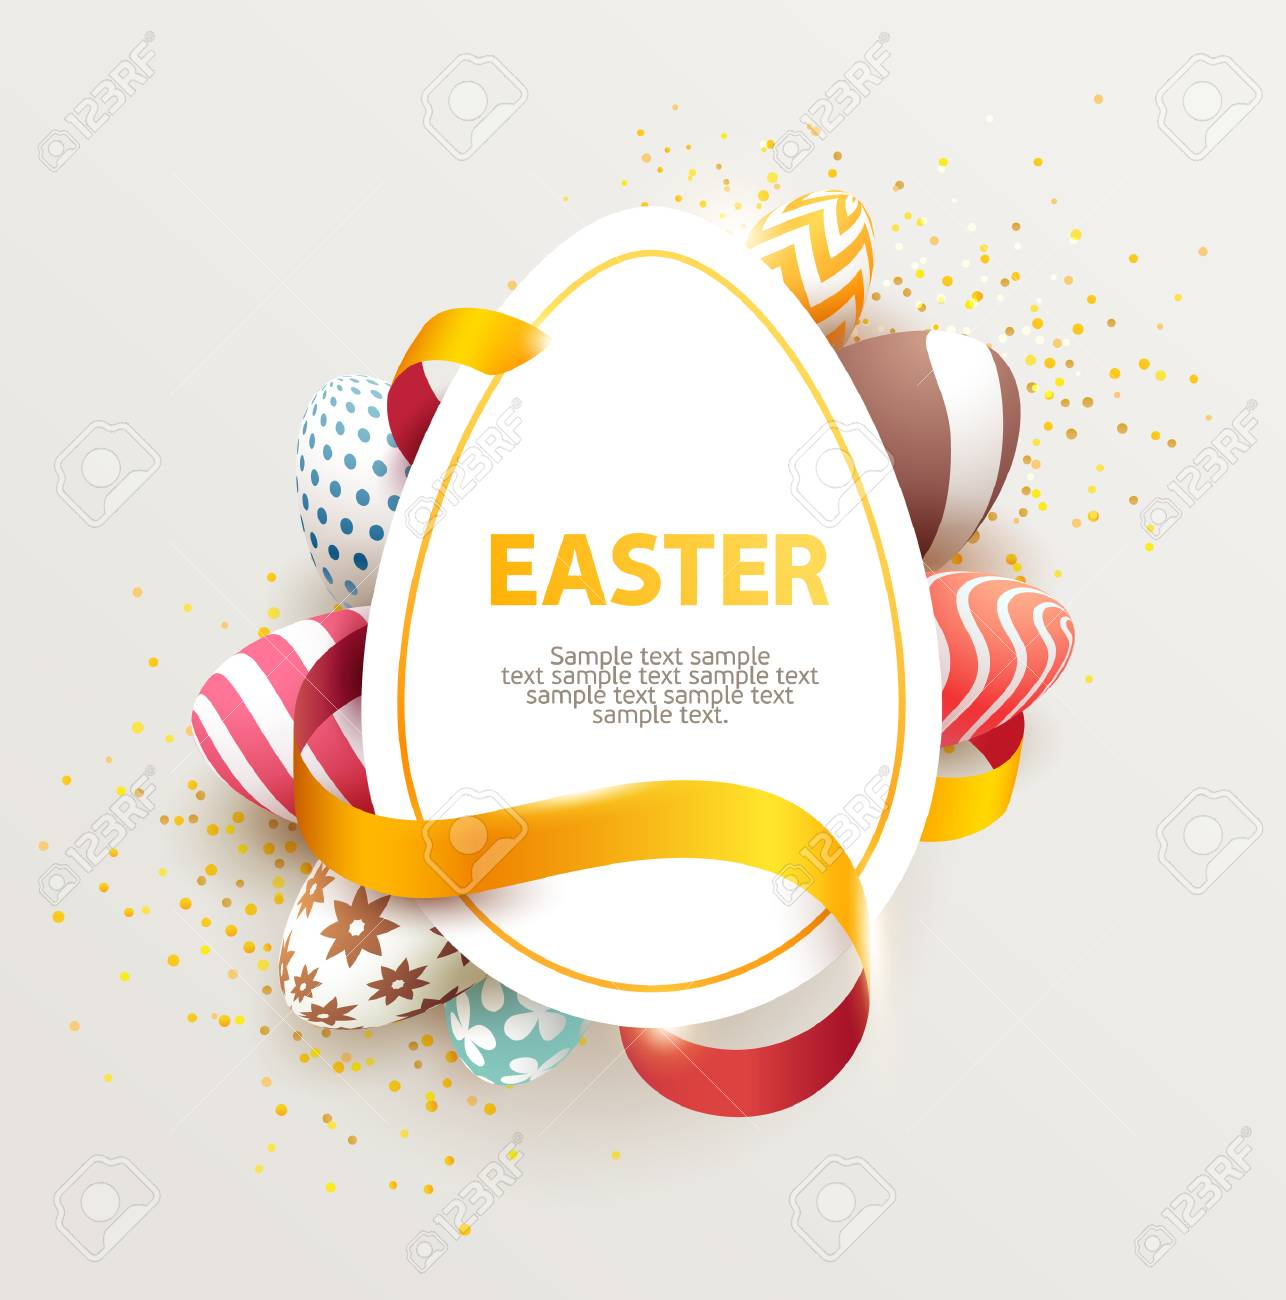 Easter colorful poster with place for text. - 74114837